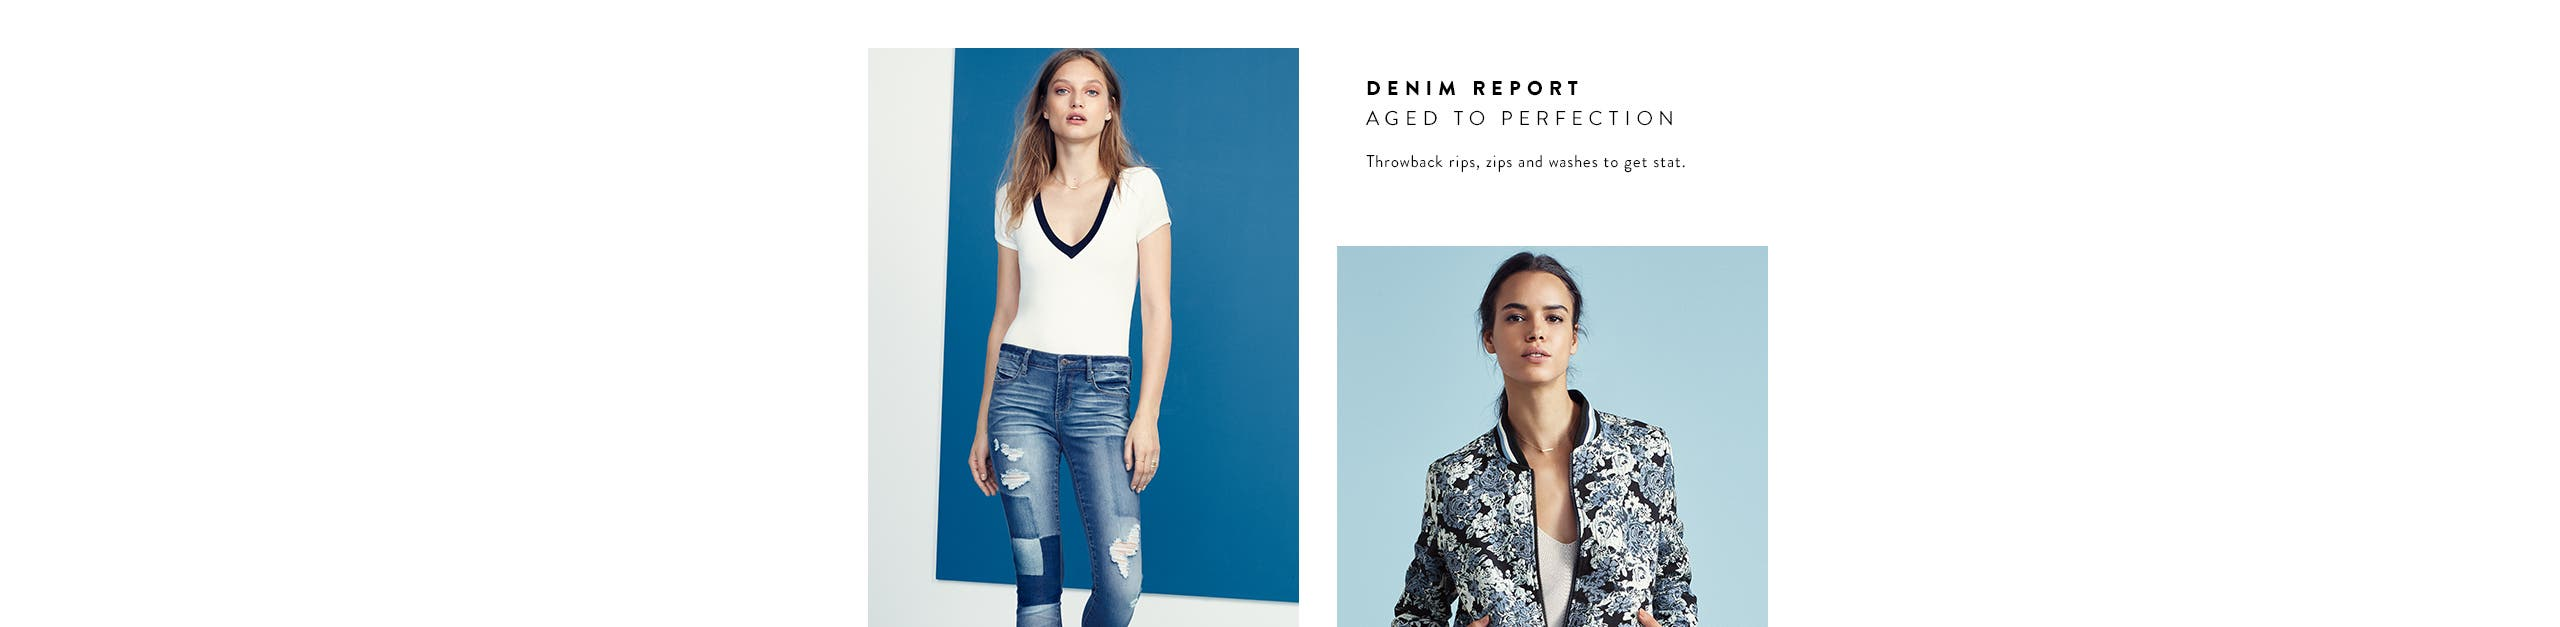 Denim report. Aged to perfection: women's jeans with vintage inspiration.